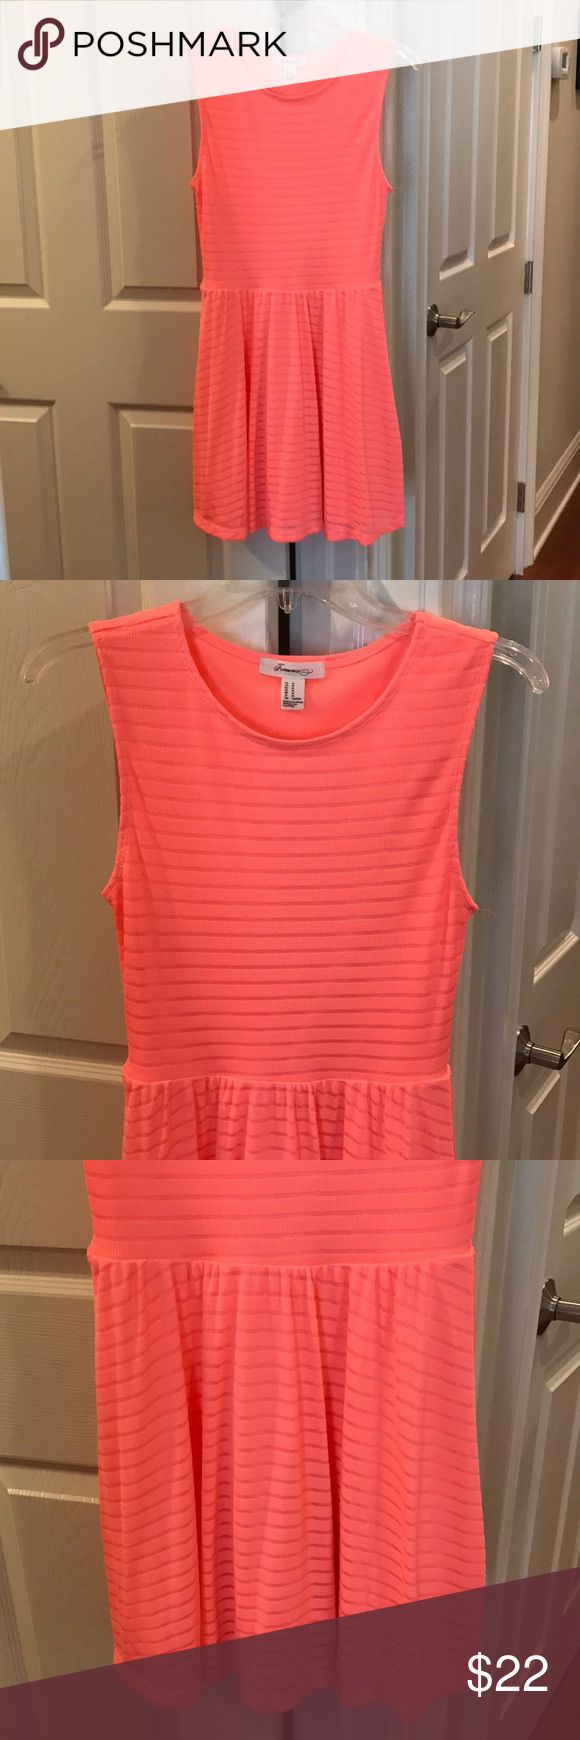 Hot pink sundress Forever 21 hot pink sundress. Size M however would fit a S without looking too big because of its stretchy material Forever 21 Dresses